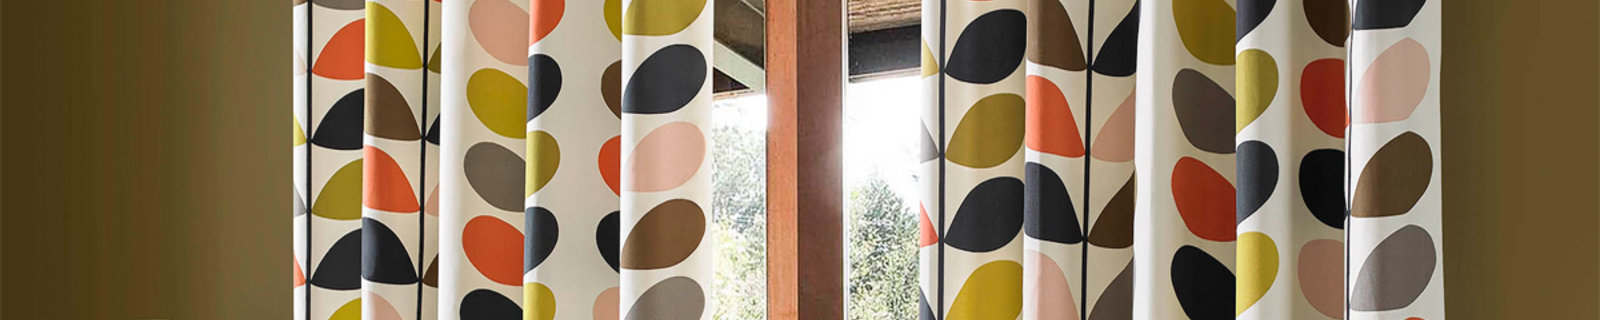 Orla Kiely Homeware collection